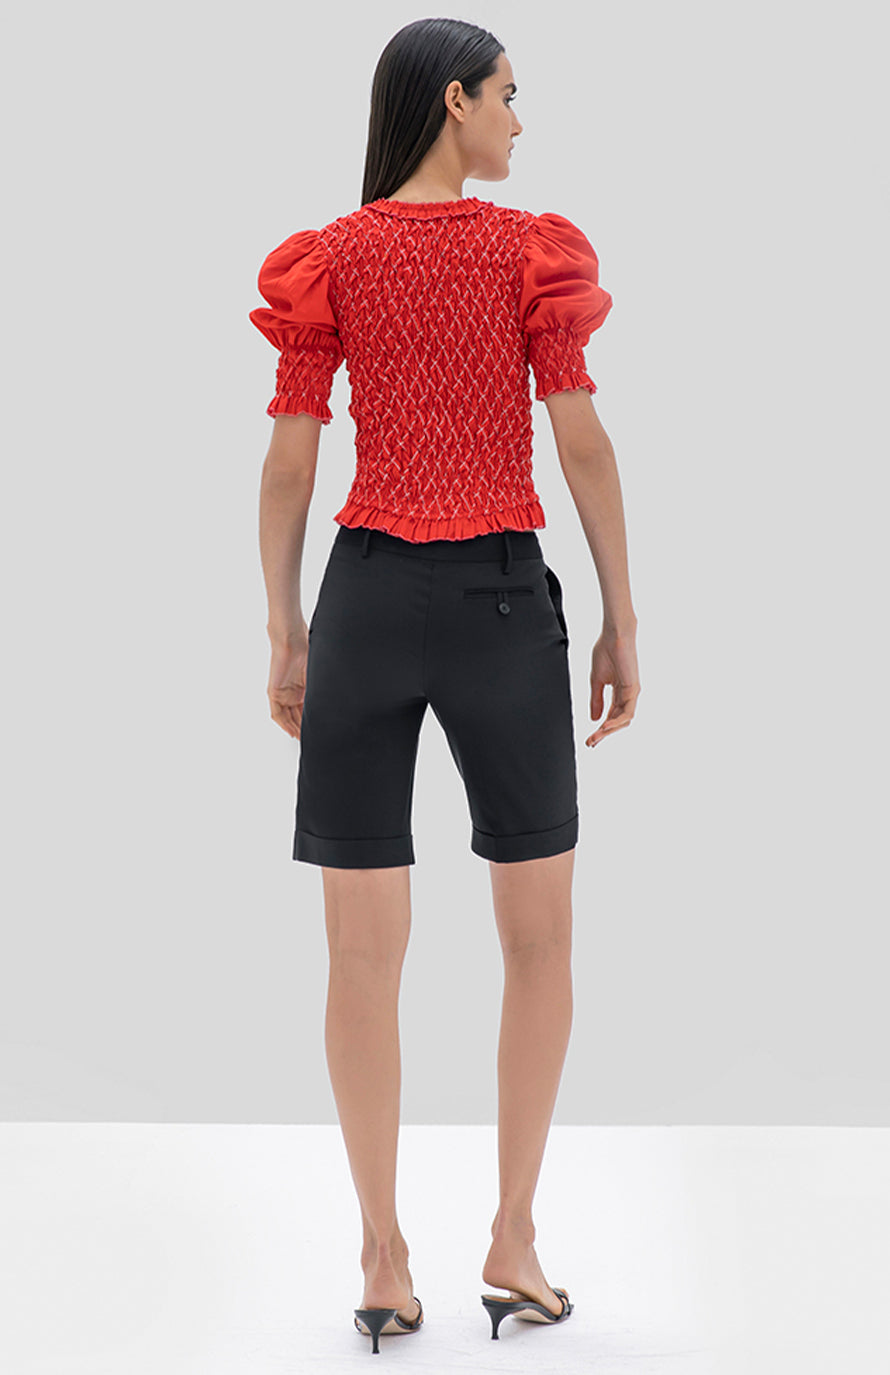 Alexis Altan top red geometric embroidery - Rear View